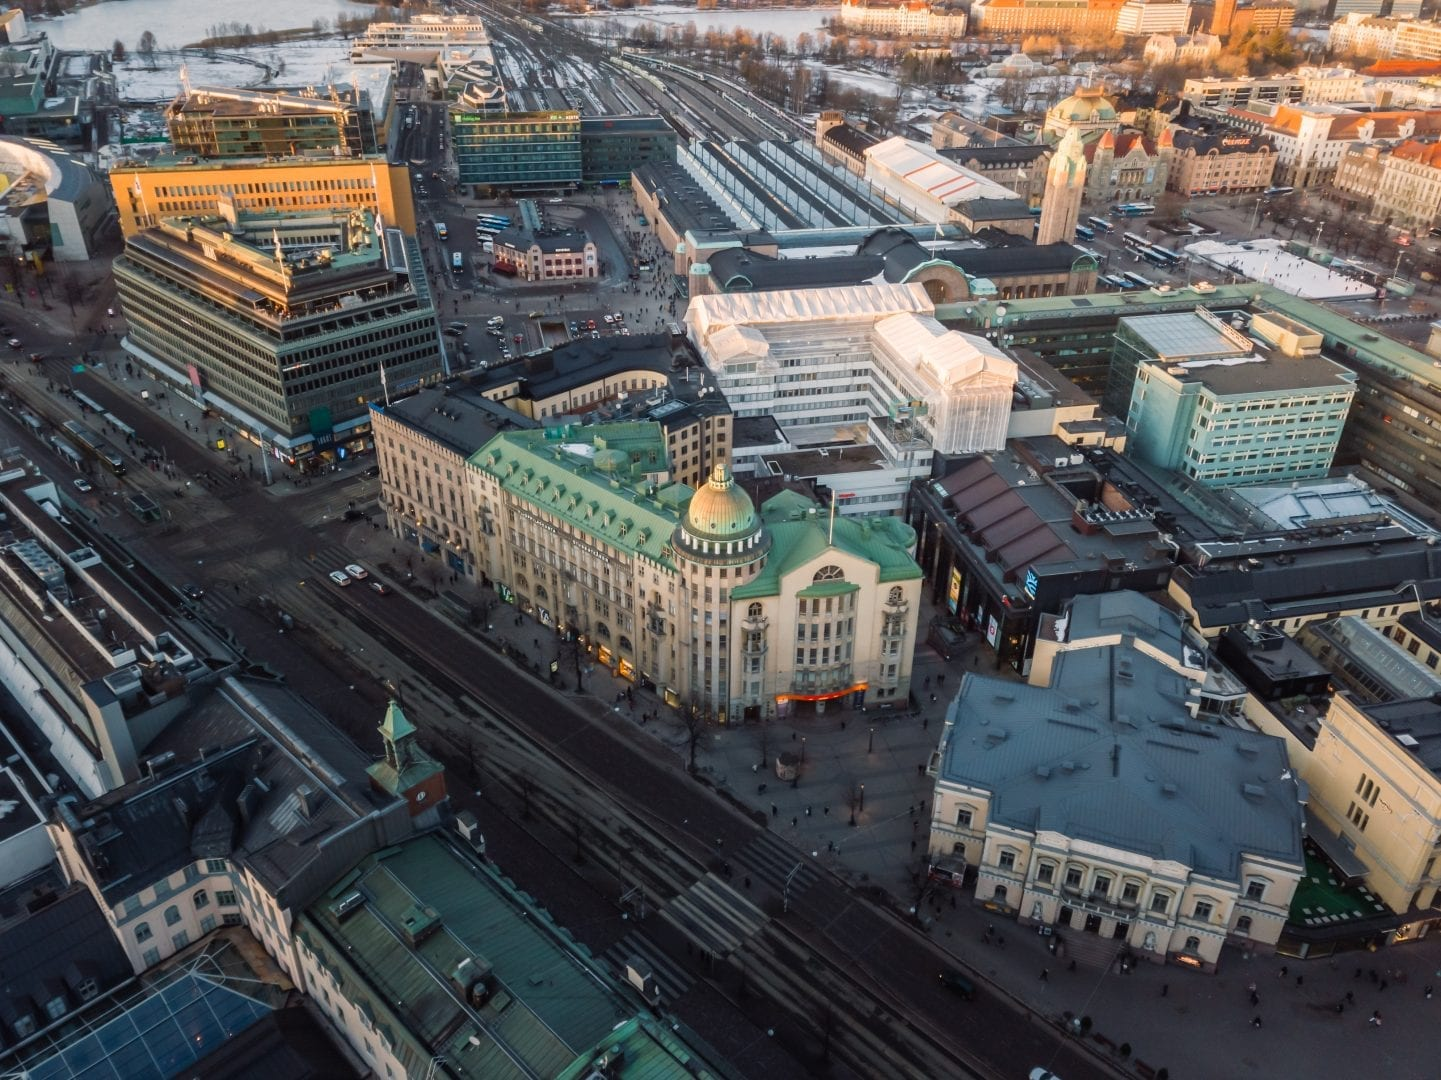 An aerial photo of the New Student House in central Helsinki. It is an old building in a shade of worn yellow with a green copper rooftop. The building is slightly L-shaped, with a tower in the corner. The round tower has an impressive, round dome. The photo also depics the surrounding city and the Central Railway Station in the back. It's winter, dusk.